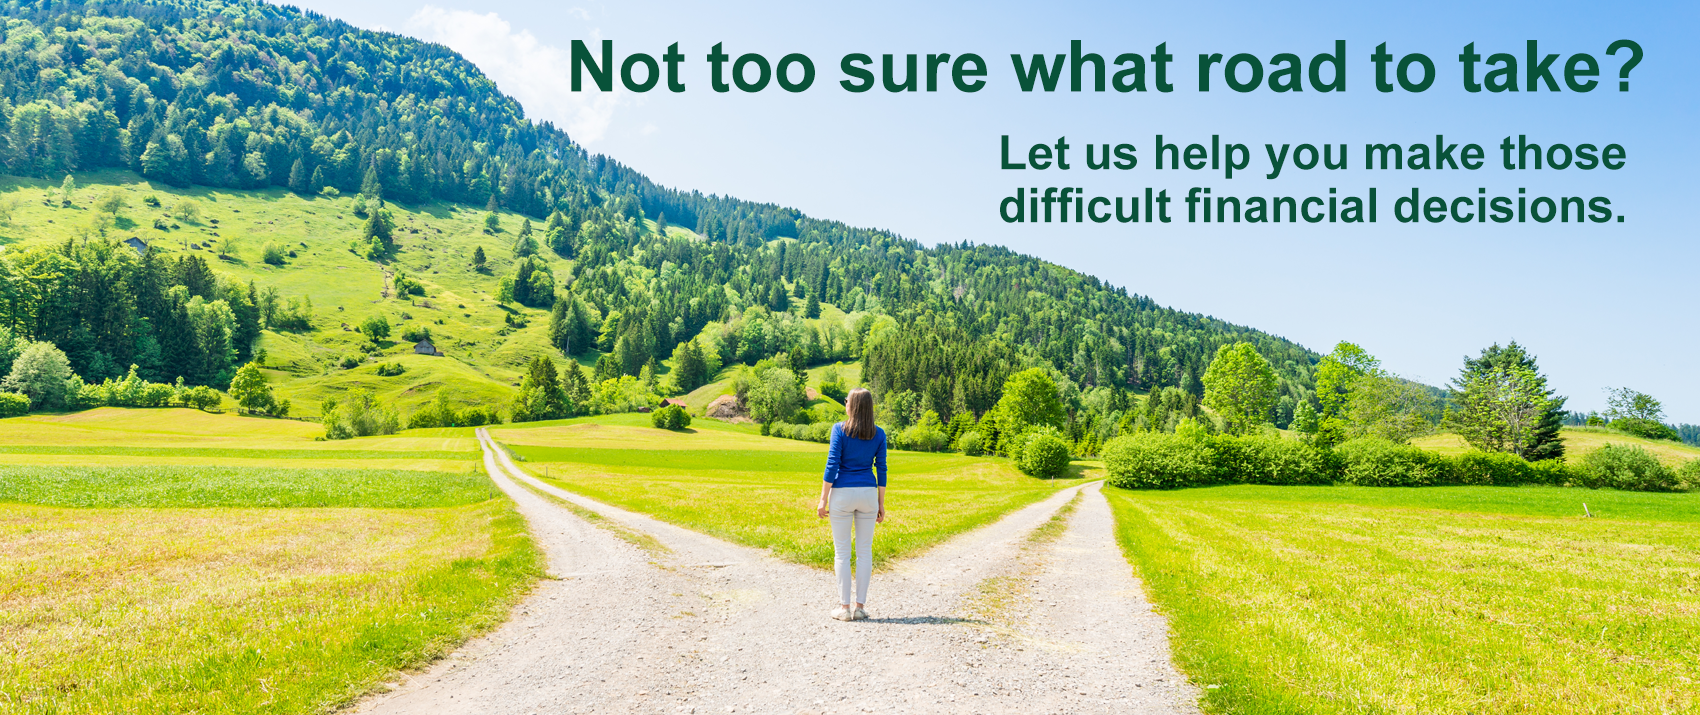 Not too sure what road to take? Let us help you make those difficult financial decisions.